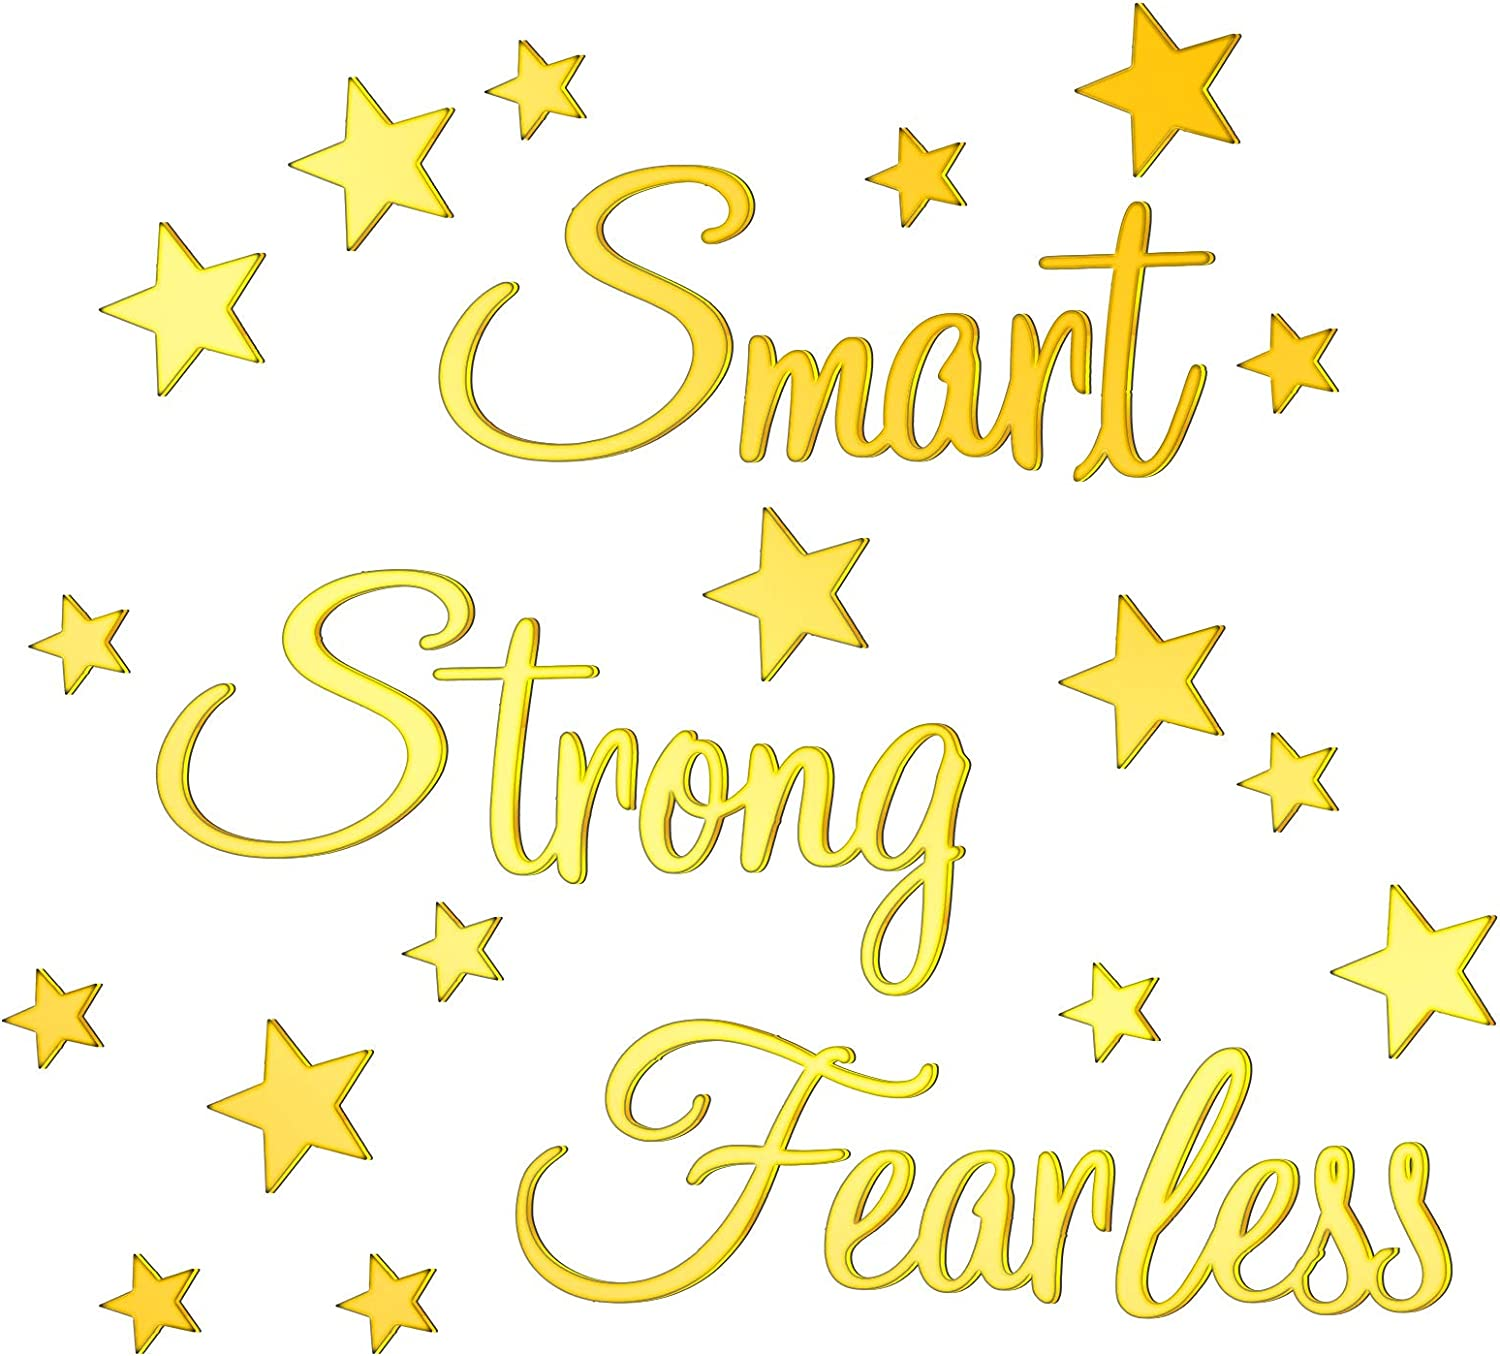 Inspirational Quote Mirror Stickers DIY Smart Strong Fearless Wall Stickers 3D Acrylic Mirror Wall Decals with 24 Pieces 3D Star Removable Mural Stickers for Girls Room Home Wall Quotes Decor (Gold)